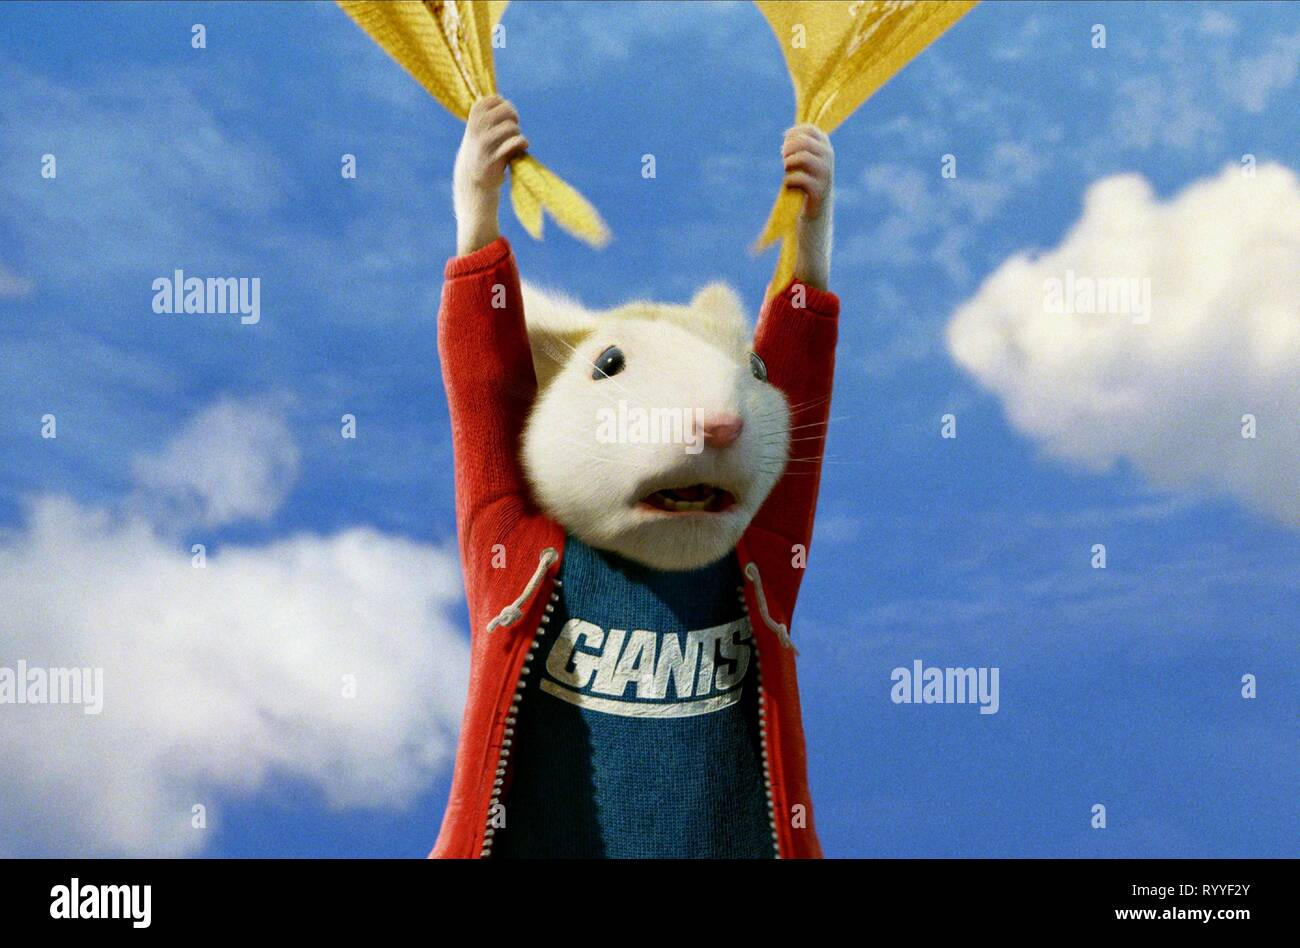 Stuart Little 2 Film High Resolution Stock Photography And Images Alamy